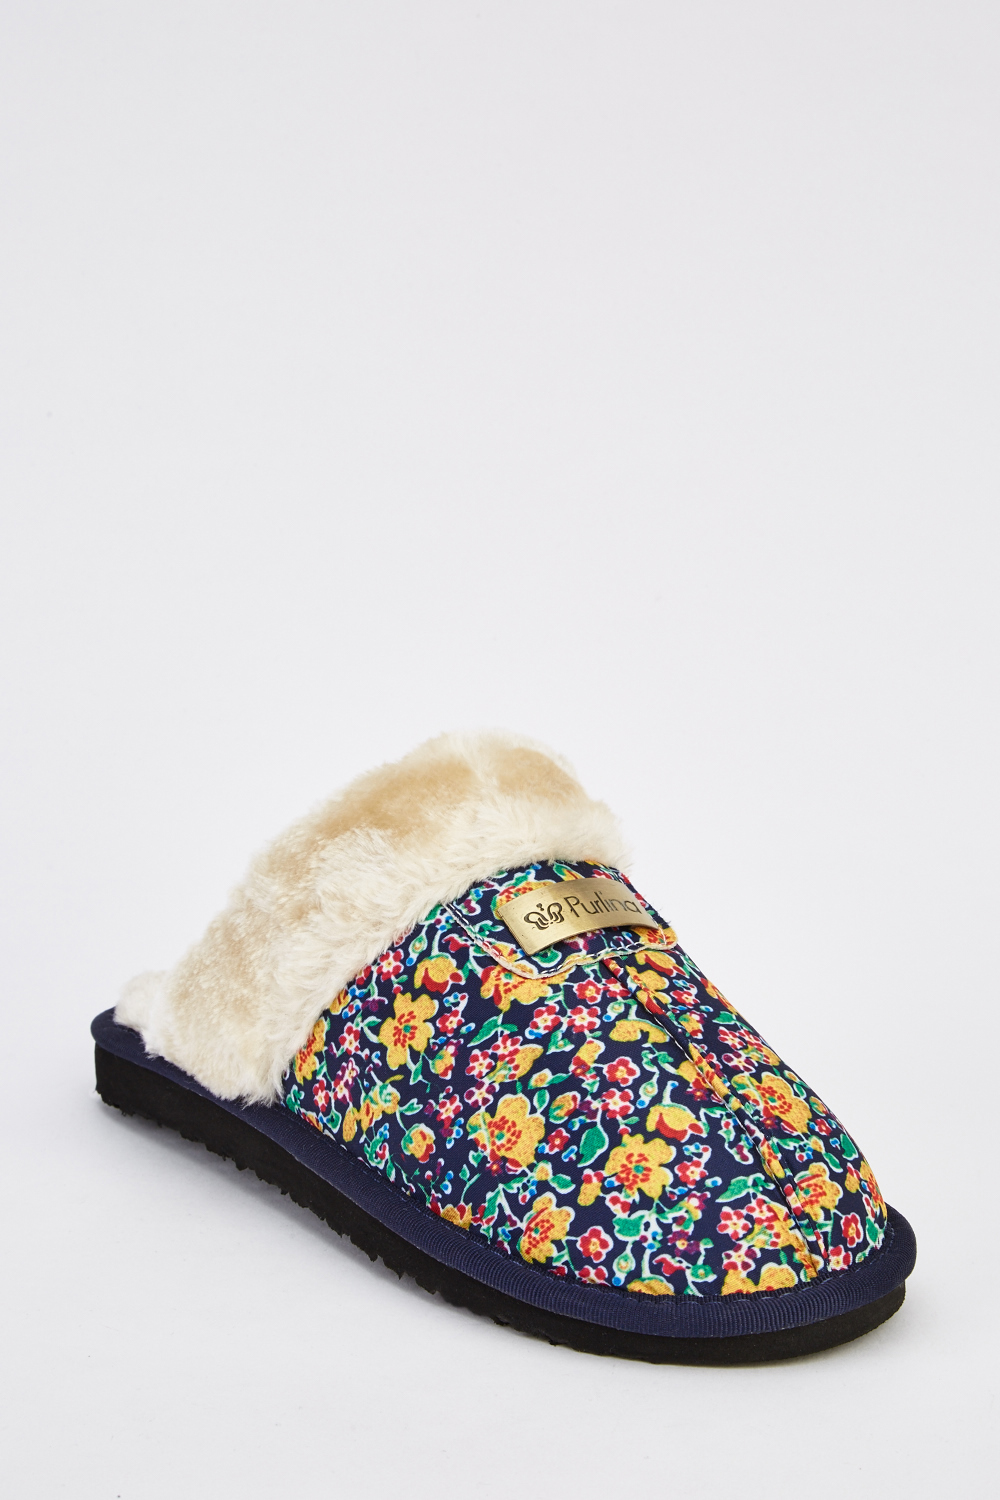 35a10cf1d Floral Print Faux Fur Insert Slippers - Just £5